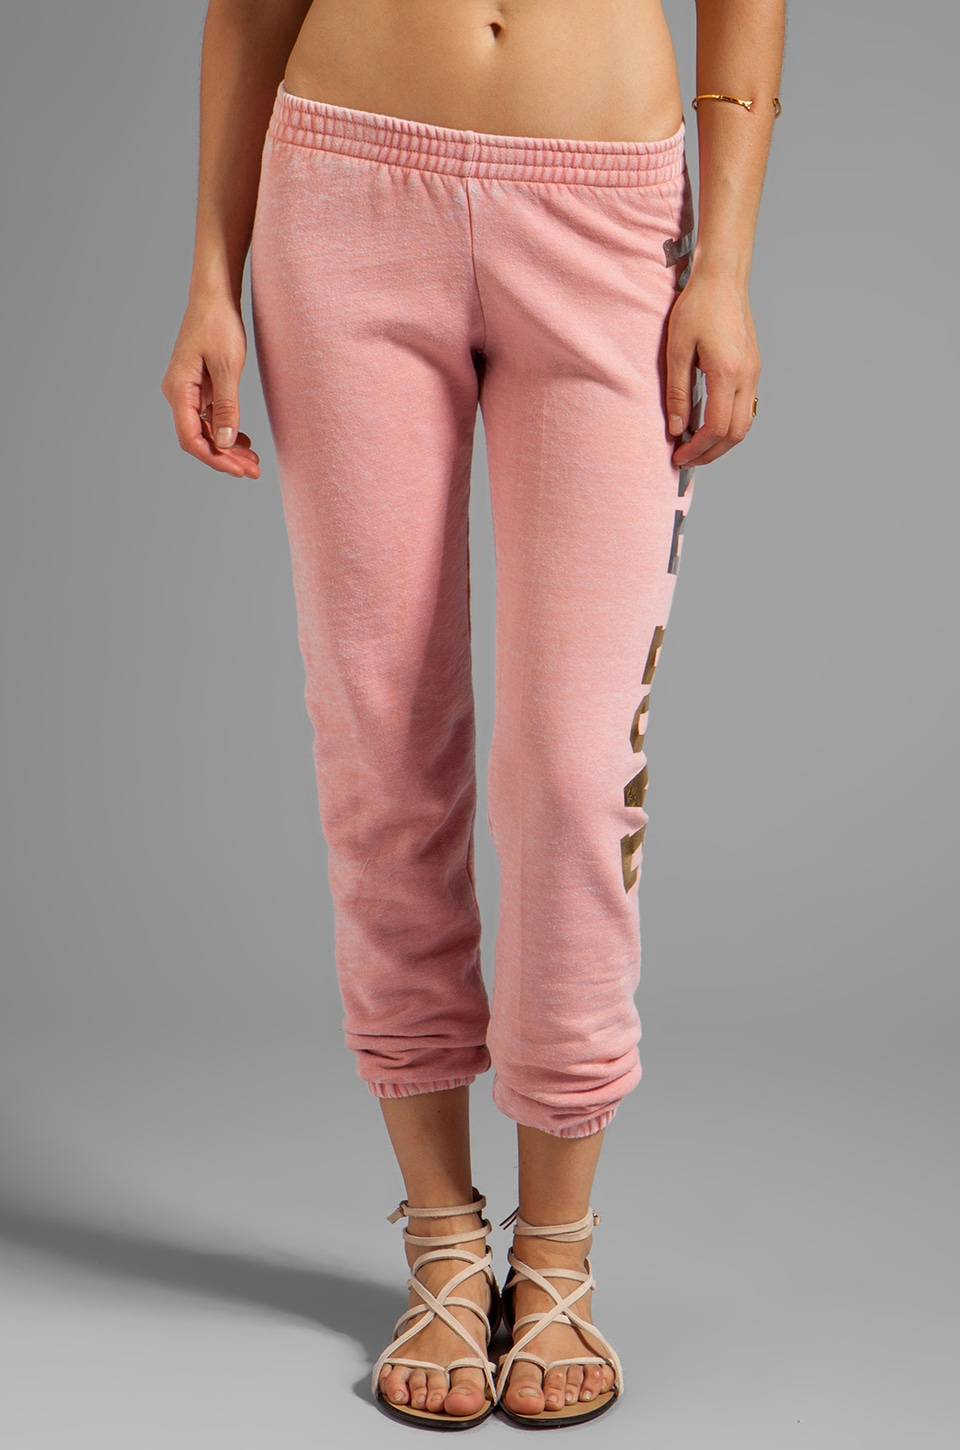 Rebel Yell Make Love Skinny Pant in Hot Pink